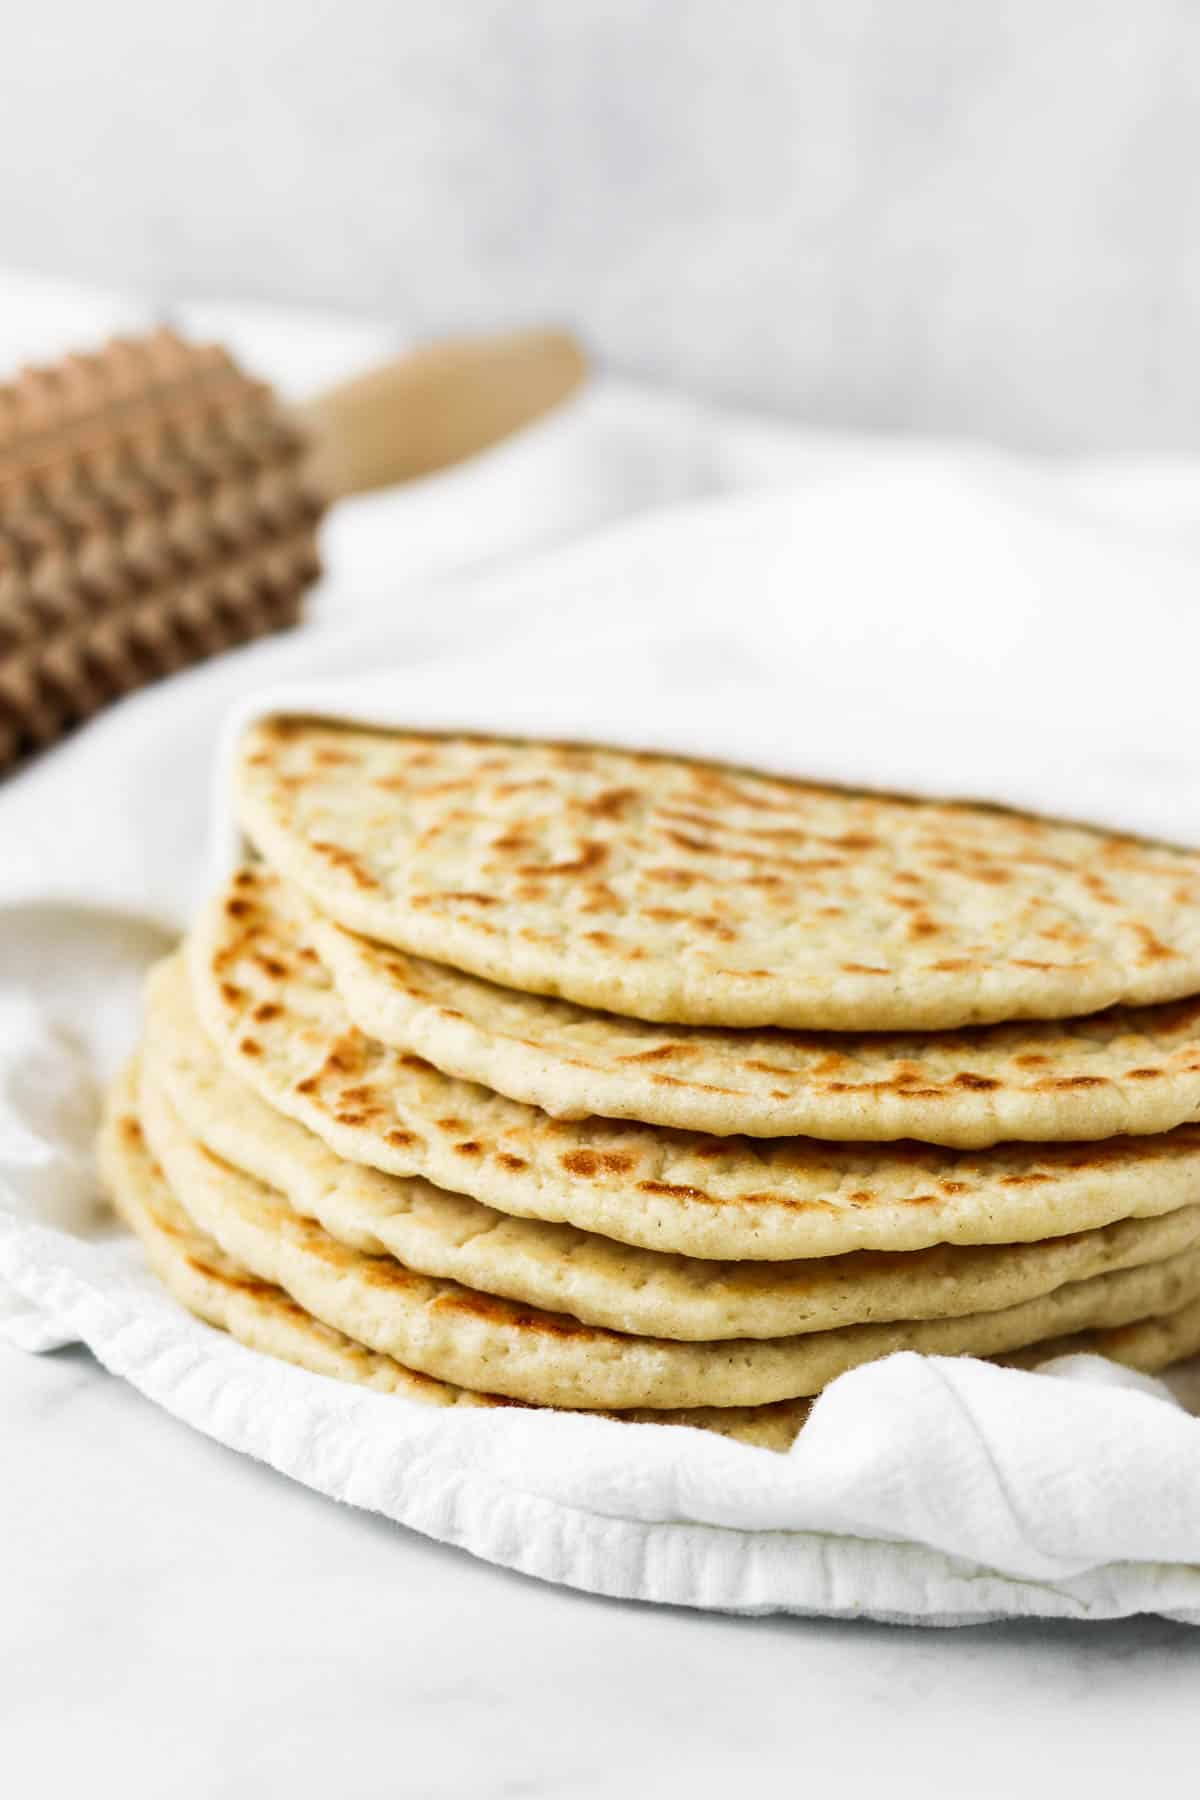 Stack of flatbreads on a towel.